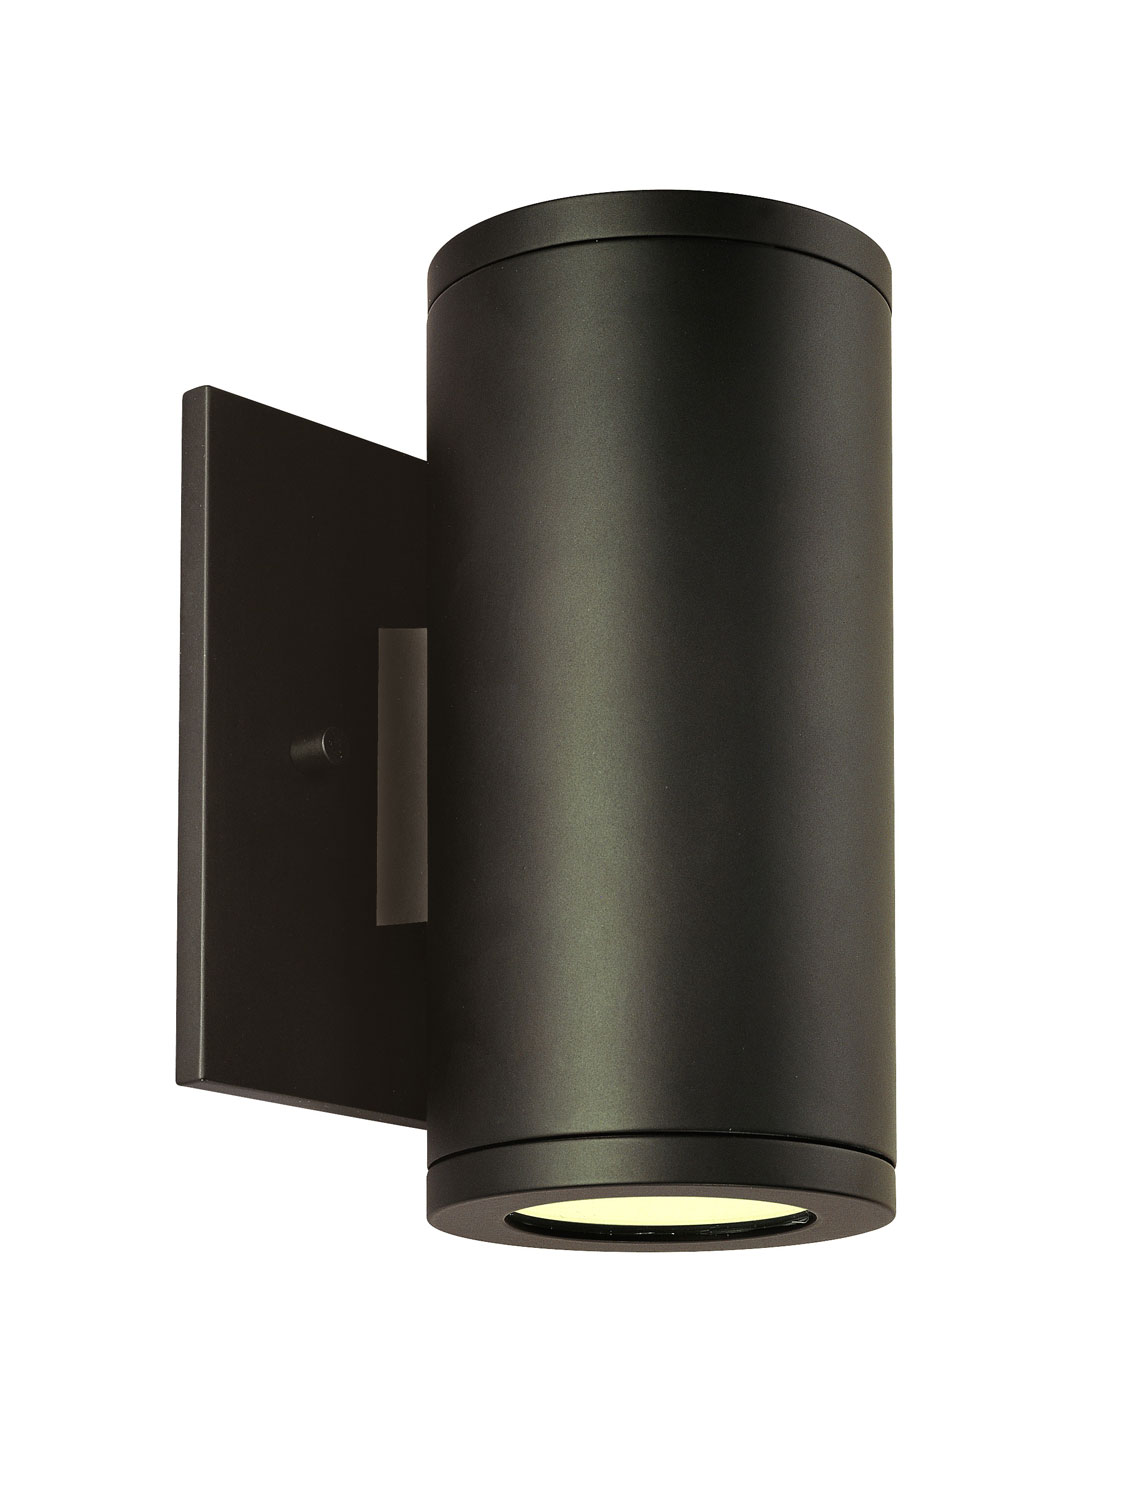 Exterior wall mount led lights the Most Ideal for Your Outdoor